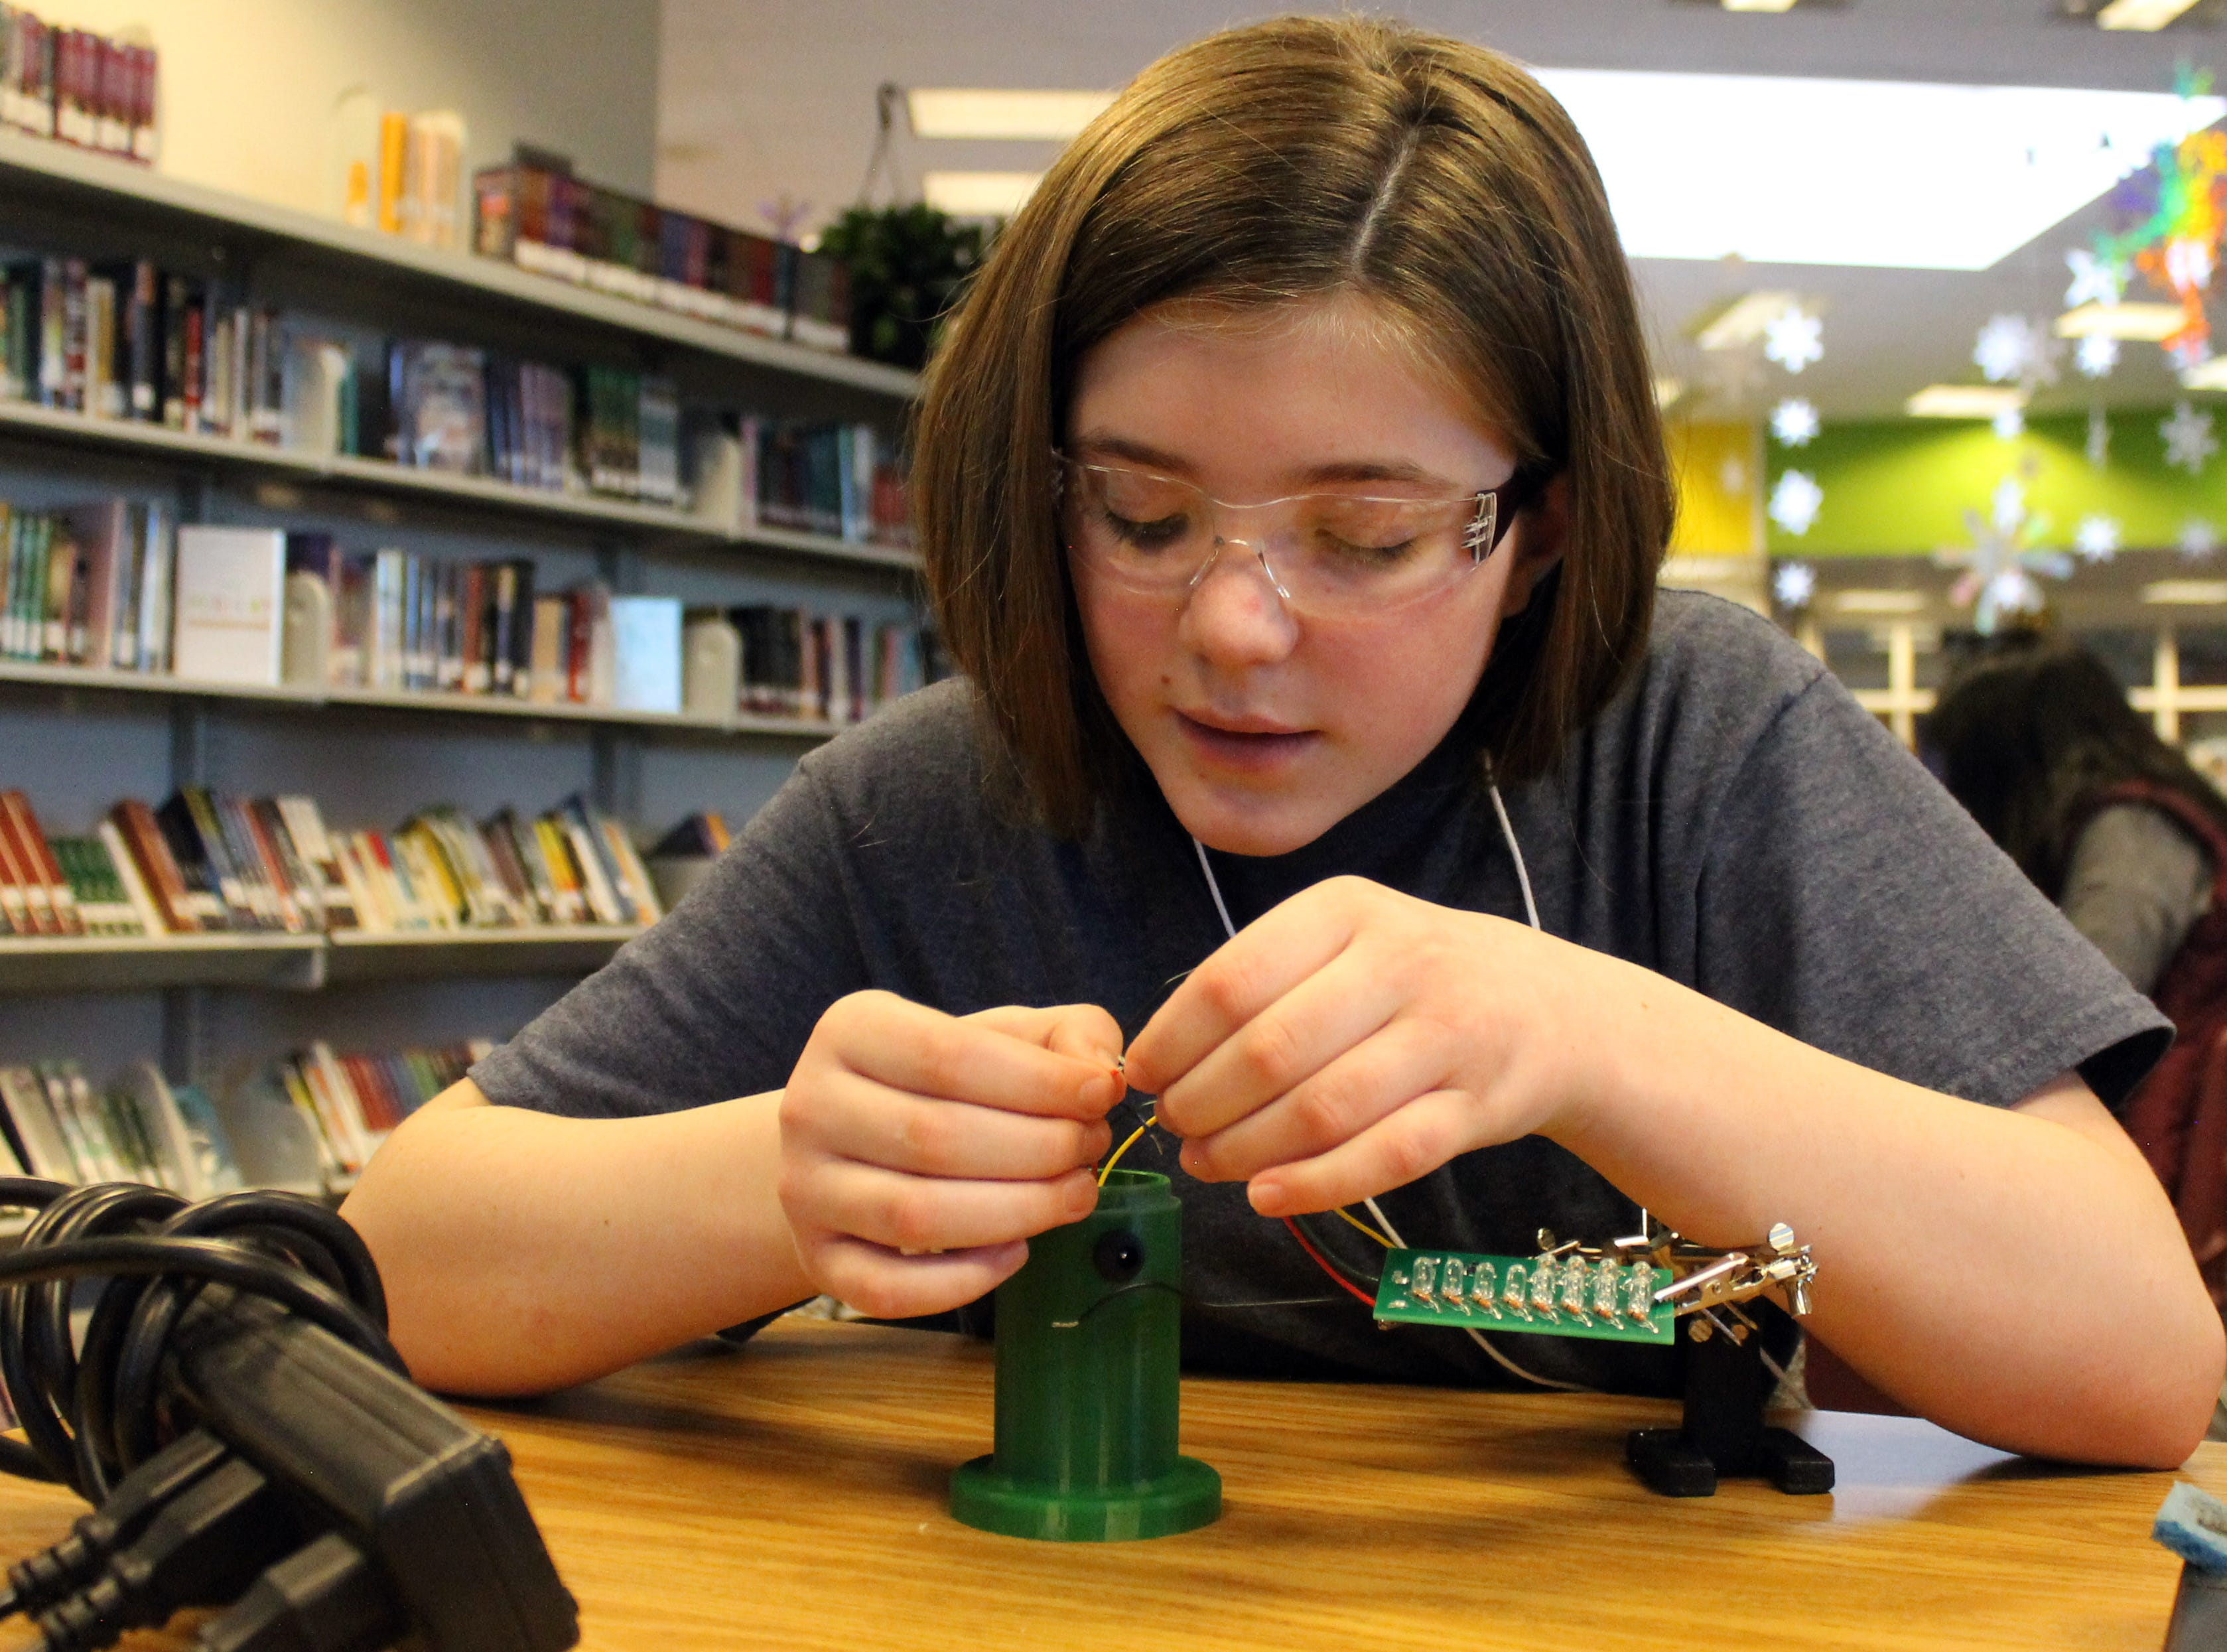 Dawn Farrer, a sixth grader at Preston Middle School, works to build a lantern for Engineering Brightness Feb. 4, 2019. She joined the club about three days prior. The group works to engineer 3D printed, sustainable lanterns and distributes  them to people without reliable electricity worldwide.